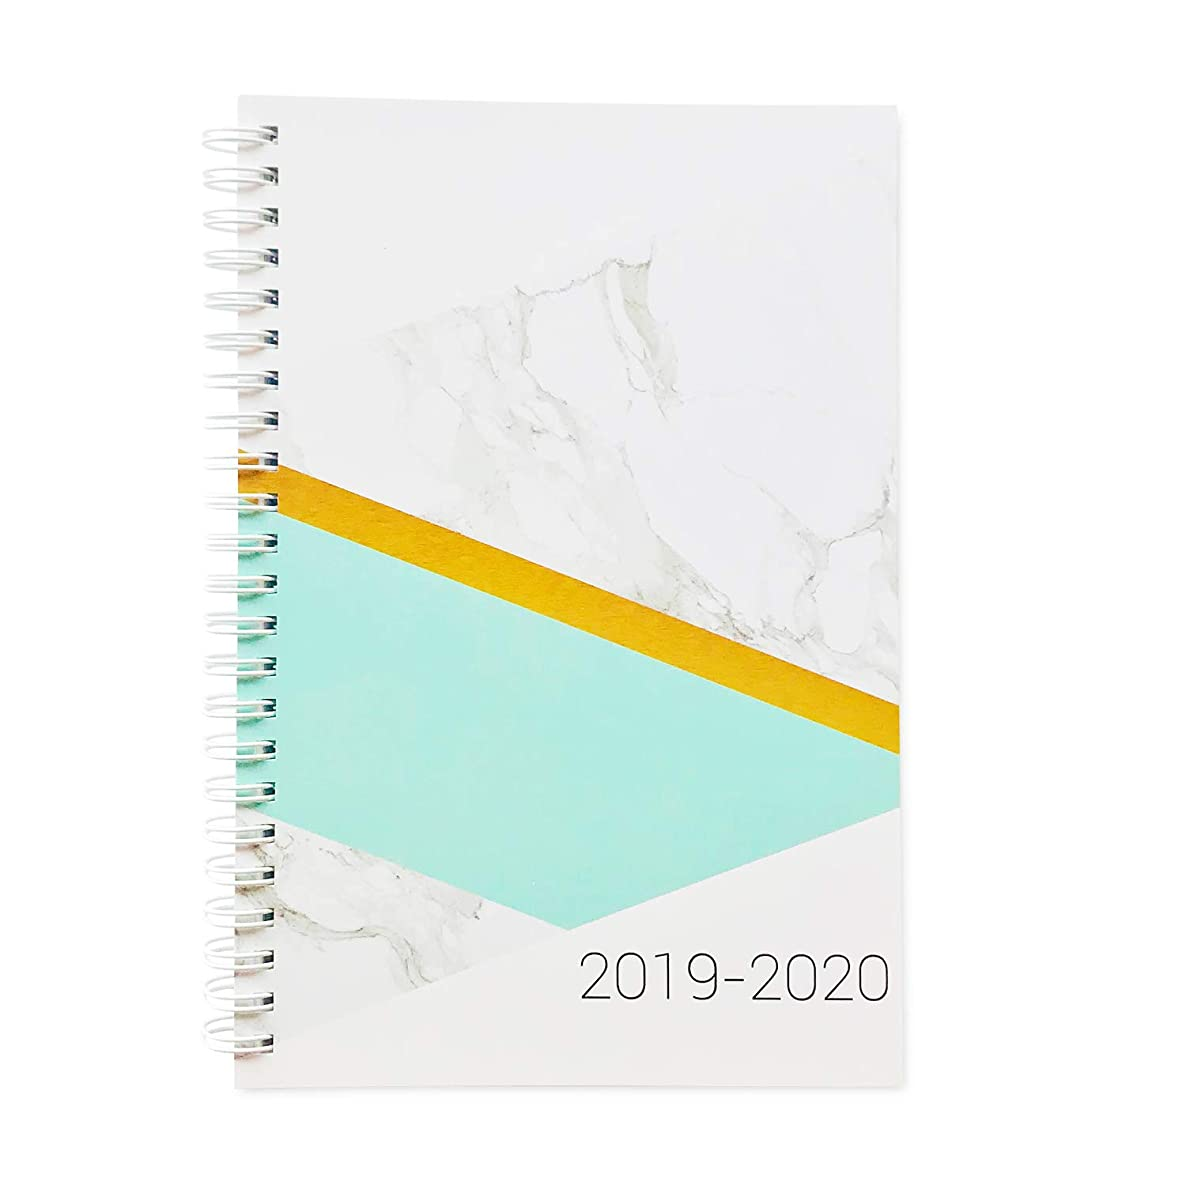 Planner 2019-2020 Monthly Weekly Academic Planner, 5.5x8 inches, Chic Fashionable Marble Teal Student Planner (AJWP-303)